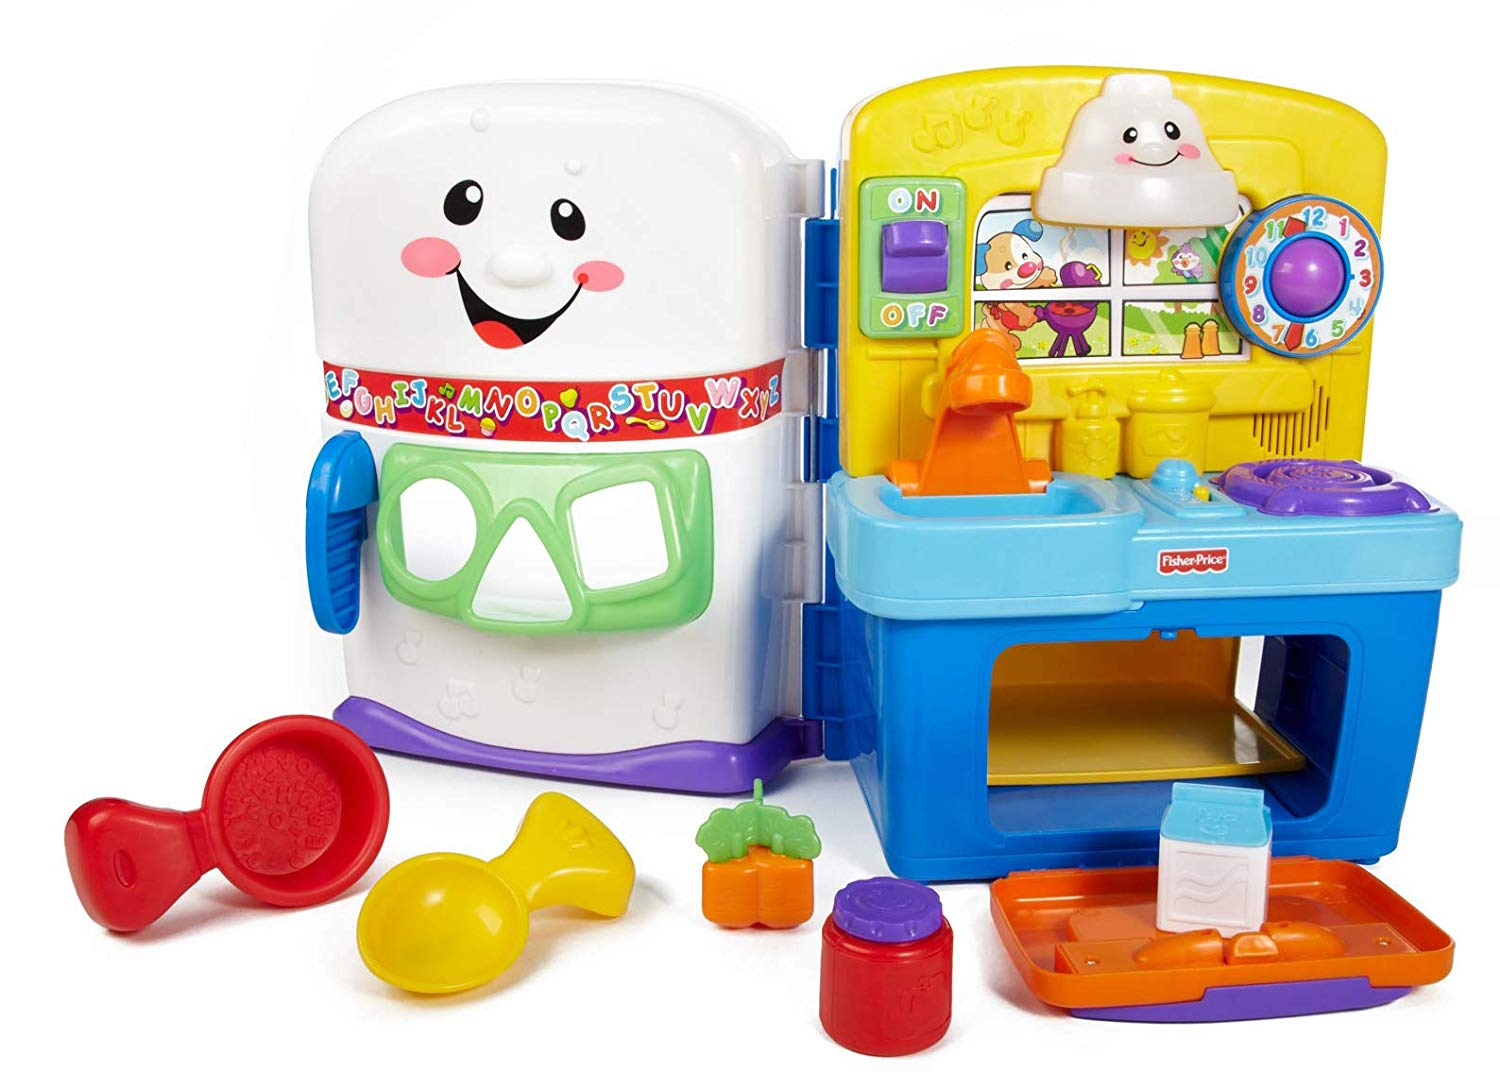 Fisher-Price Laugh & Learn Learning Kitchen Activity Center – $24.99 – Today ONLY!